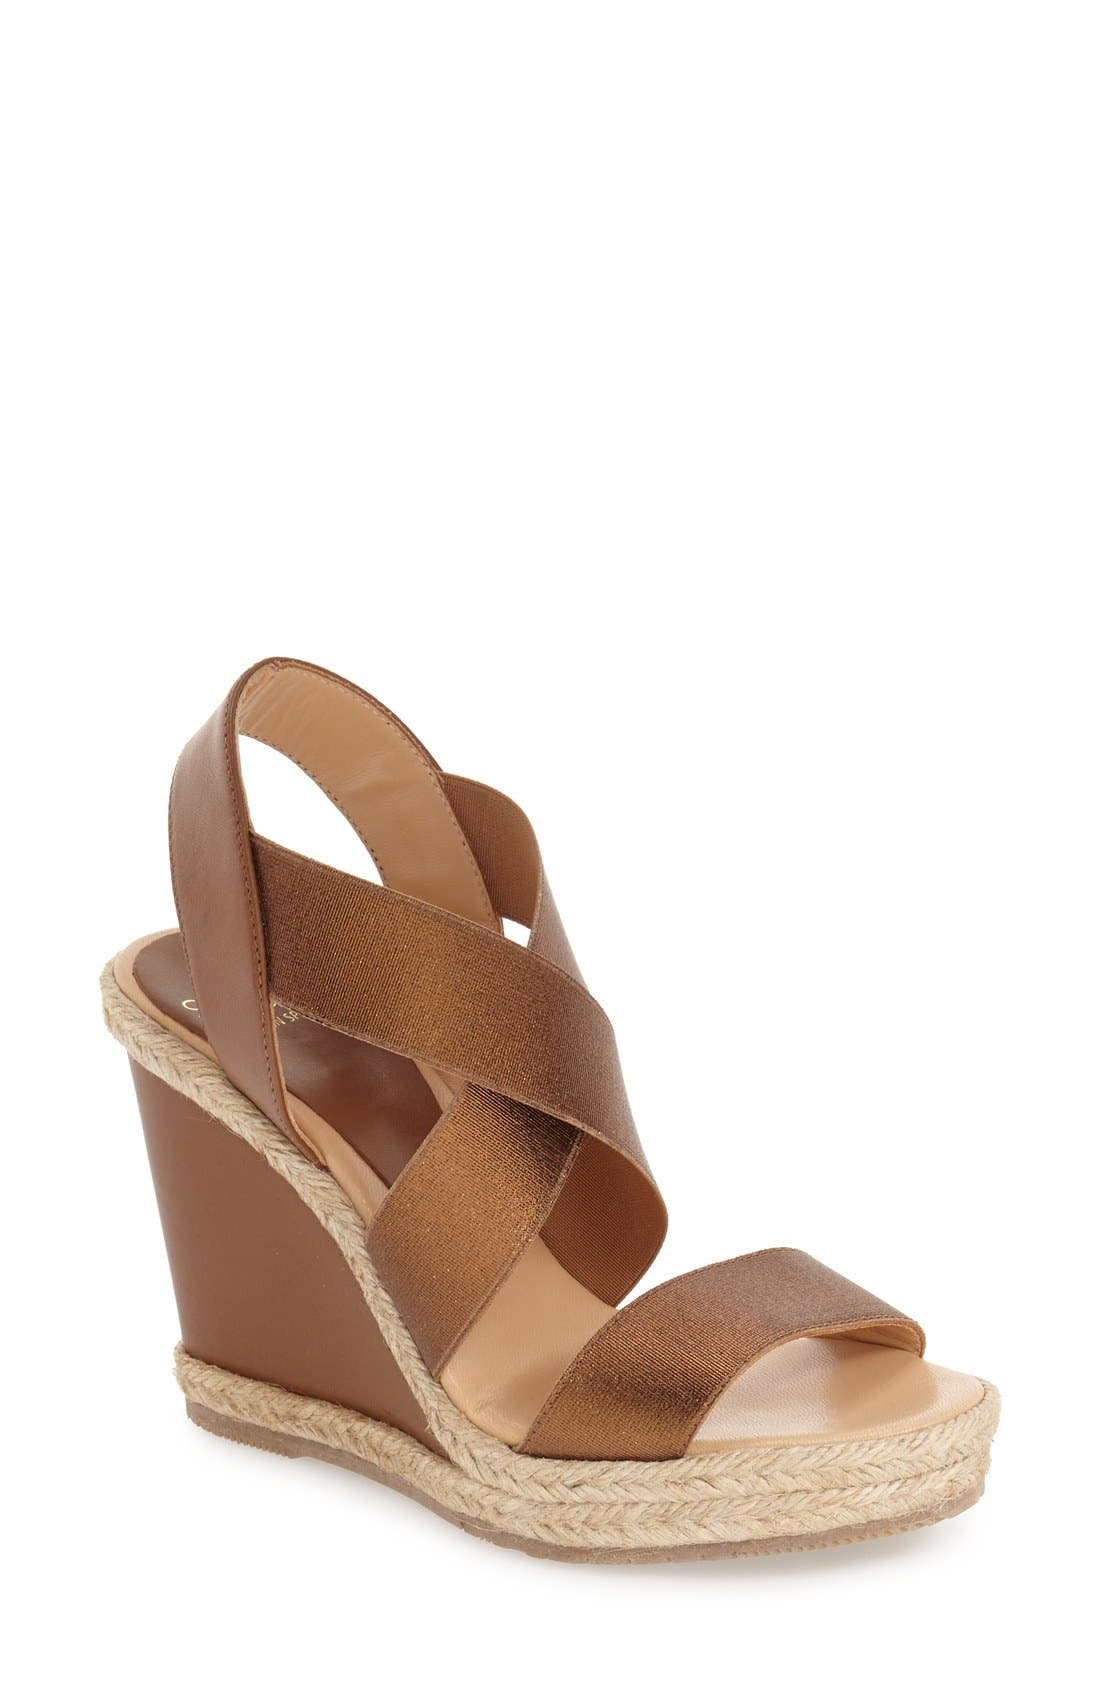 Alternate Image 1 Selected - André Assous 'Cassandra' Wedge Sandal (Women)